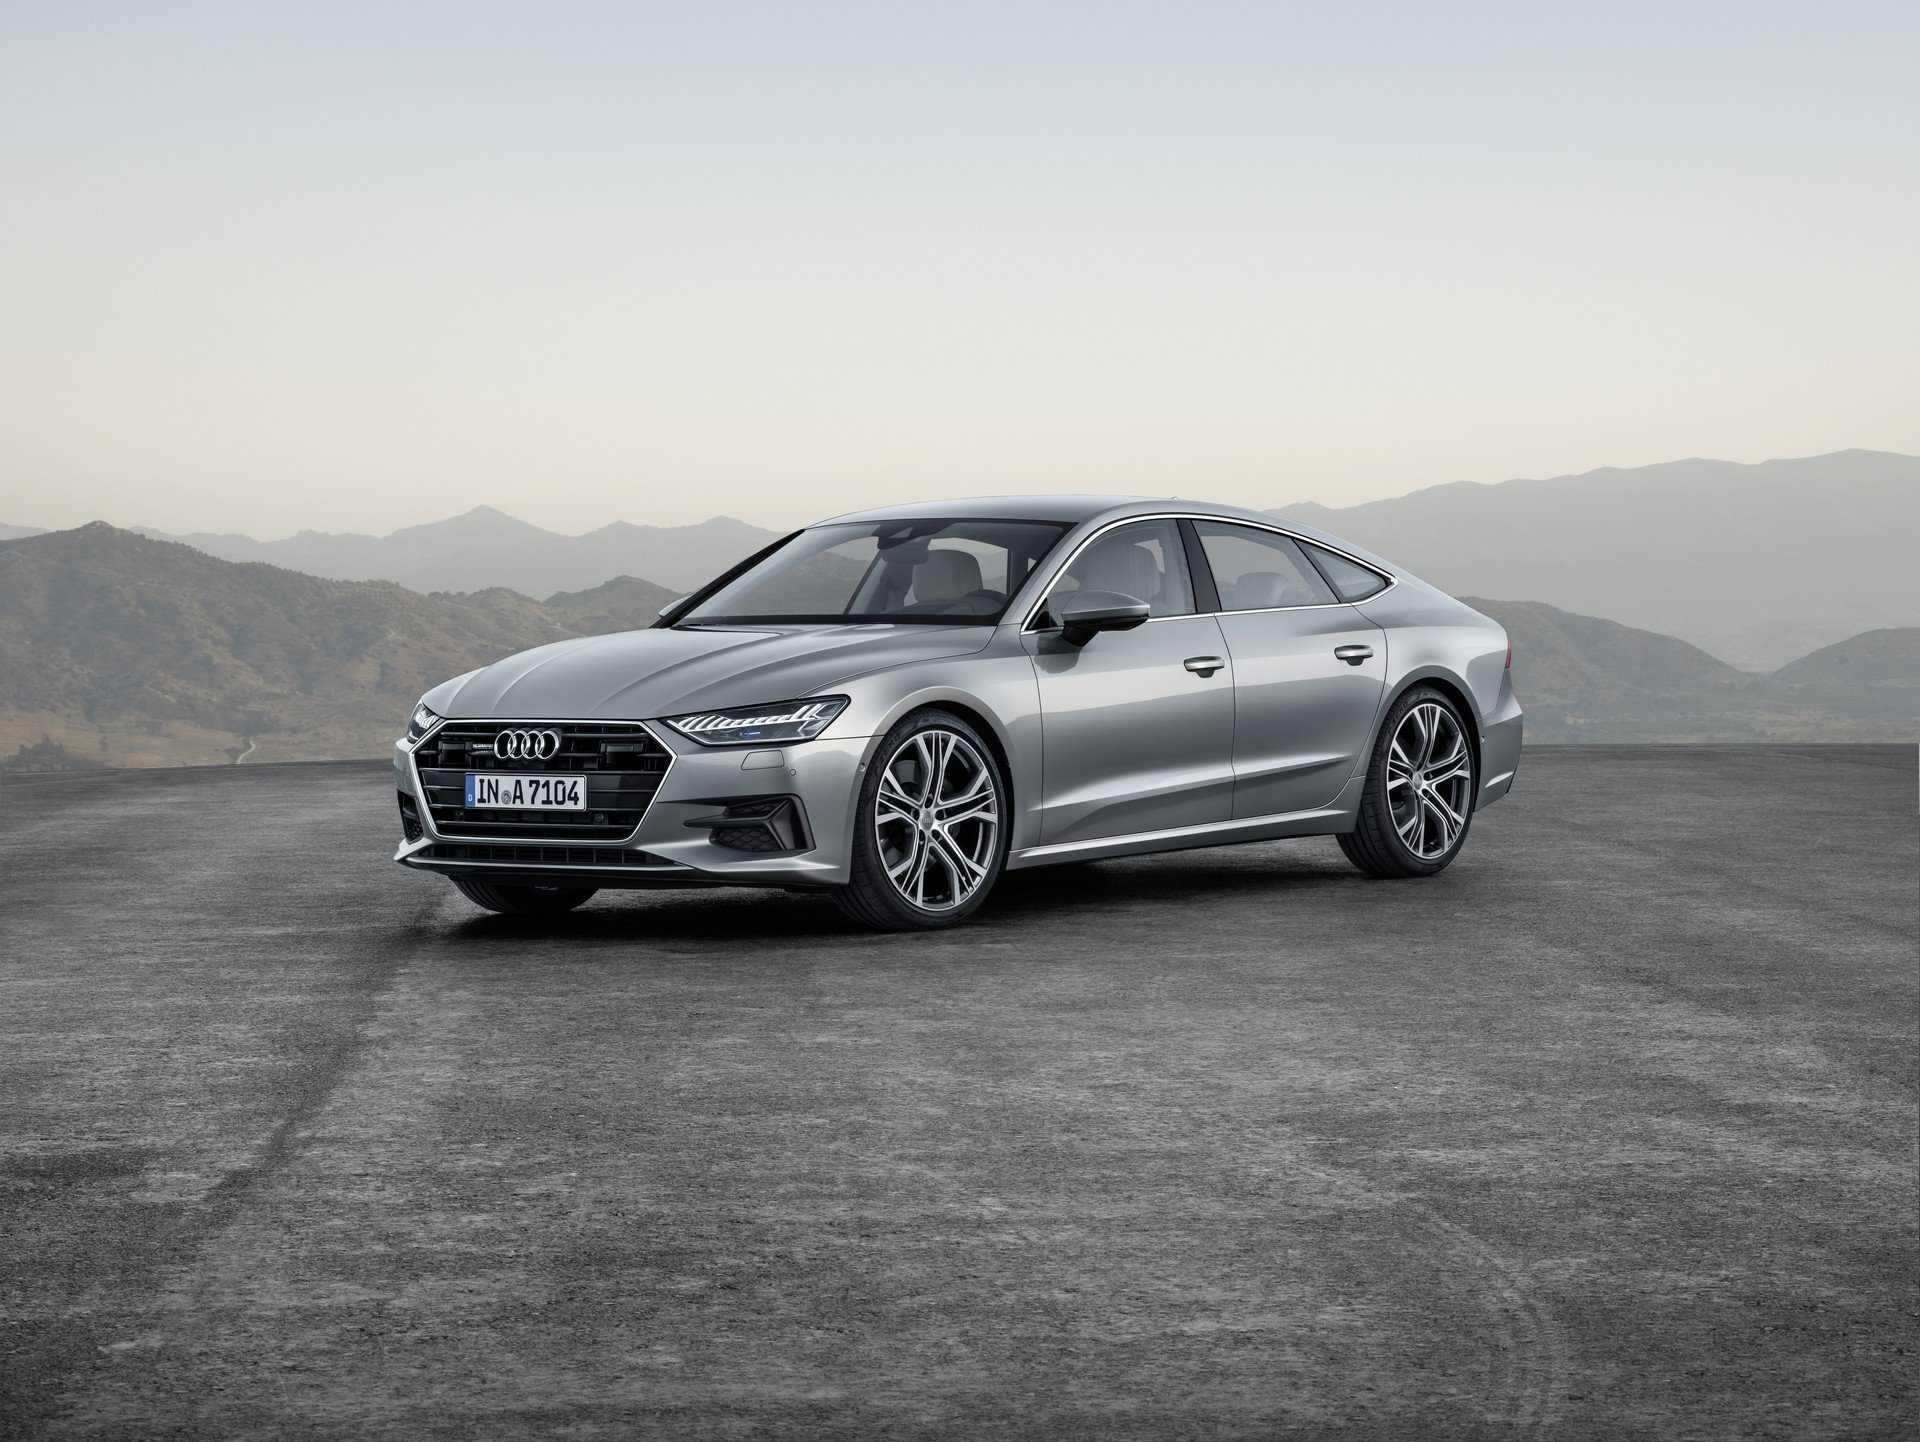 19 Concept of Audi A7 2020 Wallpaper with Audi A7 2020